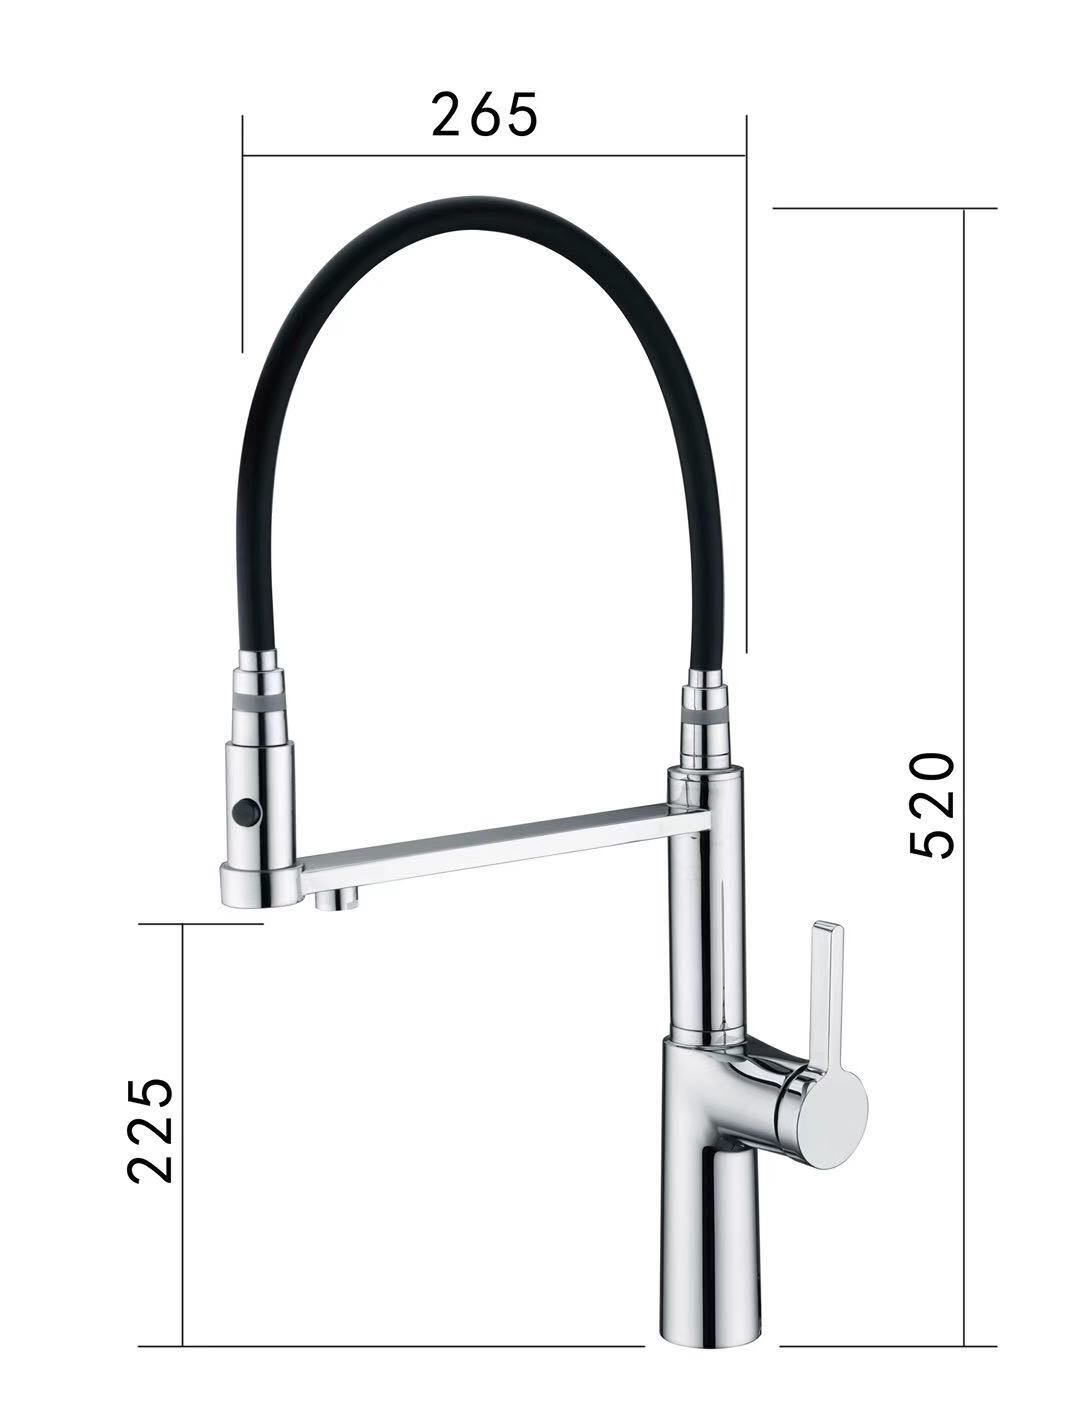 3 Way Kitchen Water Filter Faucet Drinking Sink Rotatable